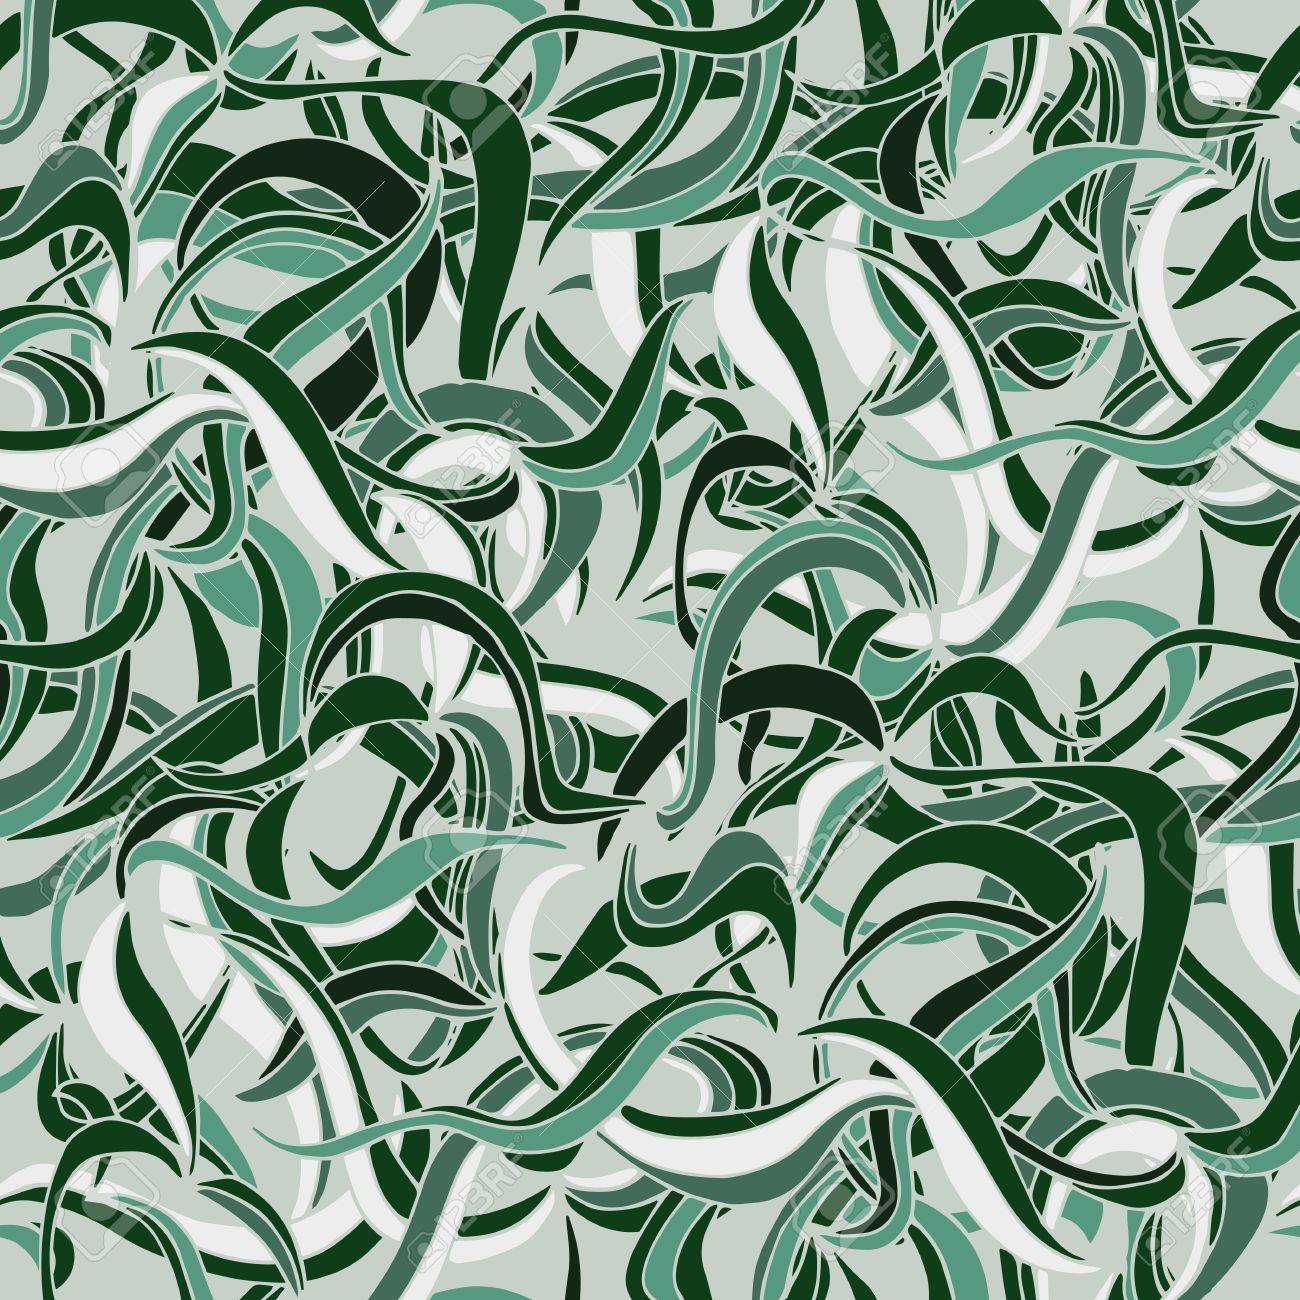 Curtain Texture Seamless seamless abstract grass pattern. can be used for curtains